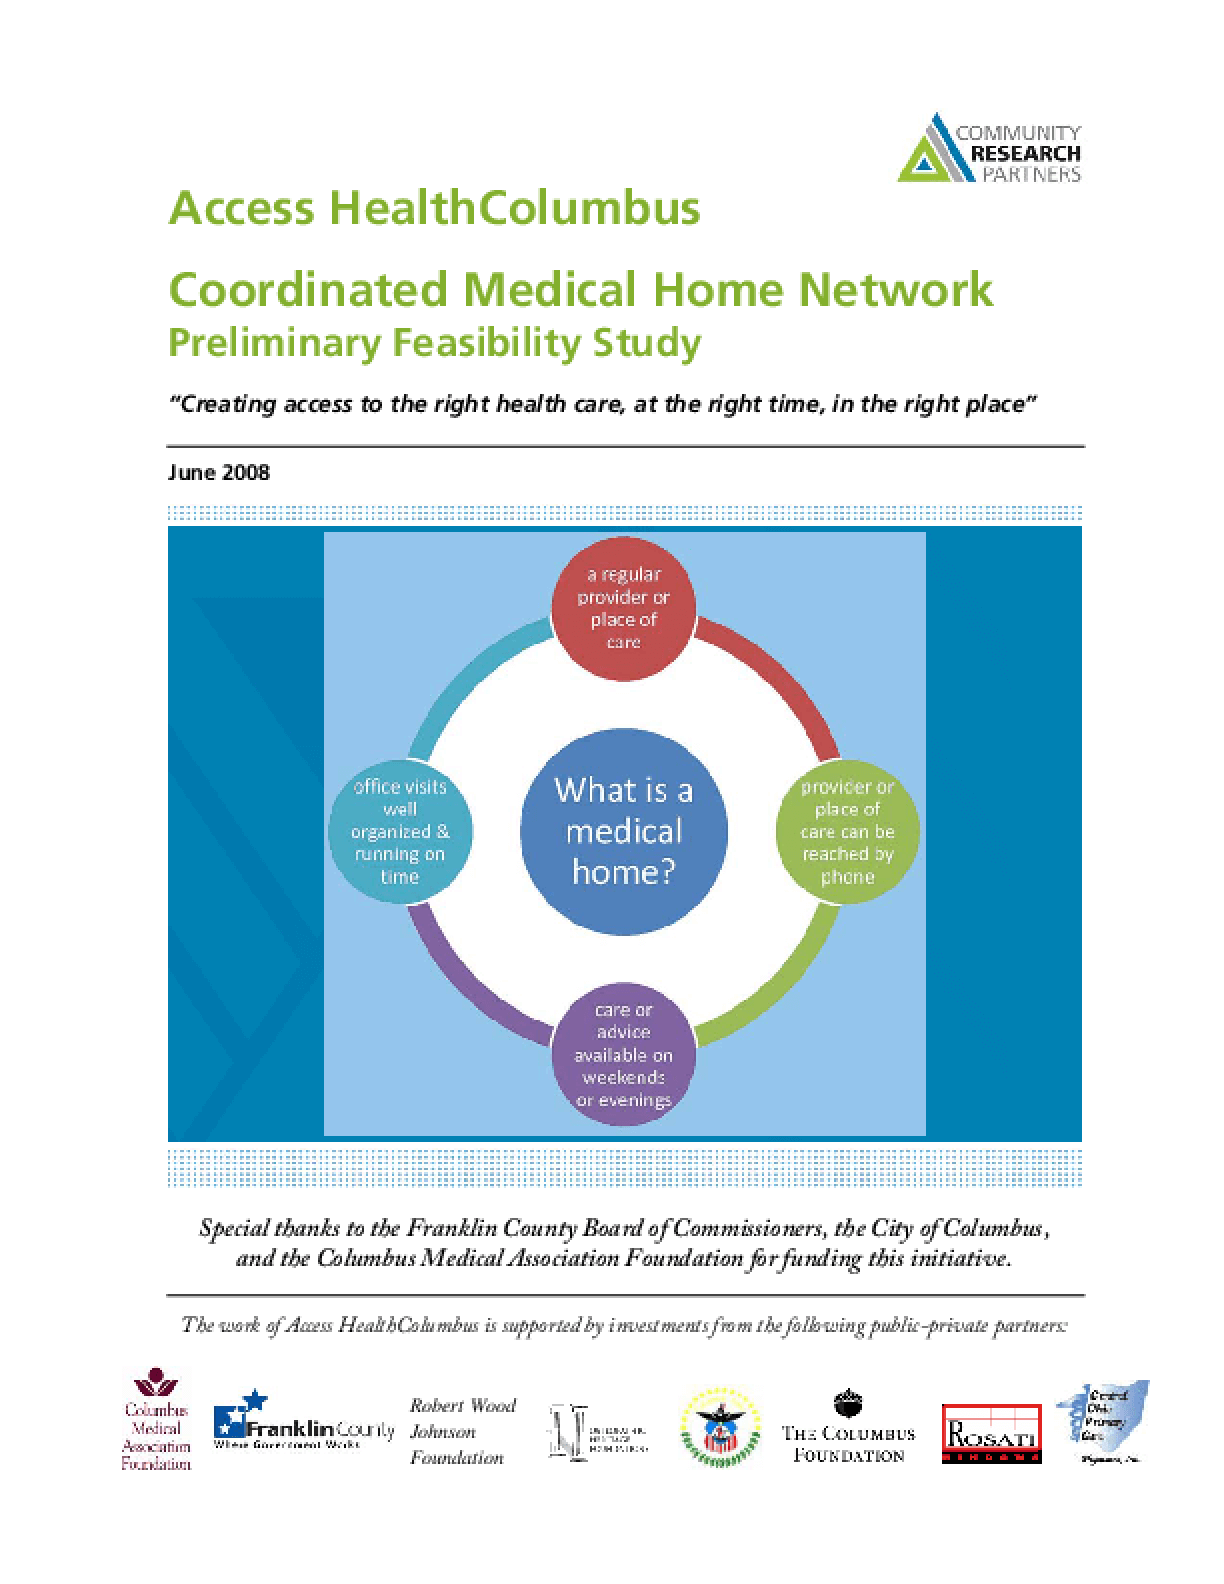 Coordinated Medical Home Network Preliminary Feasibility Study